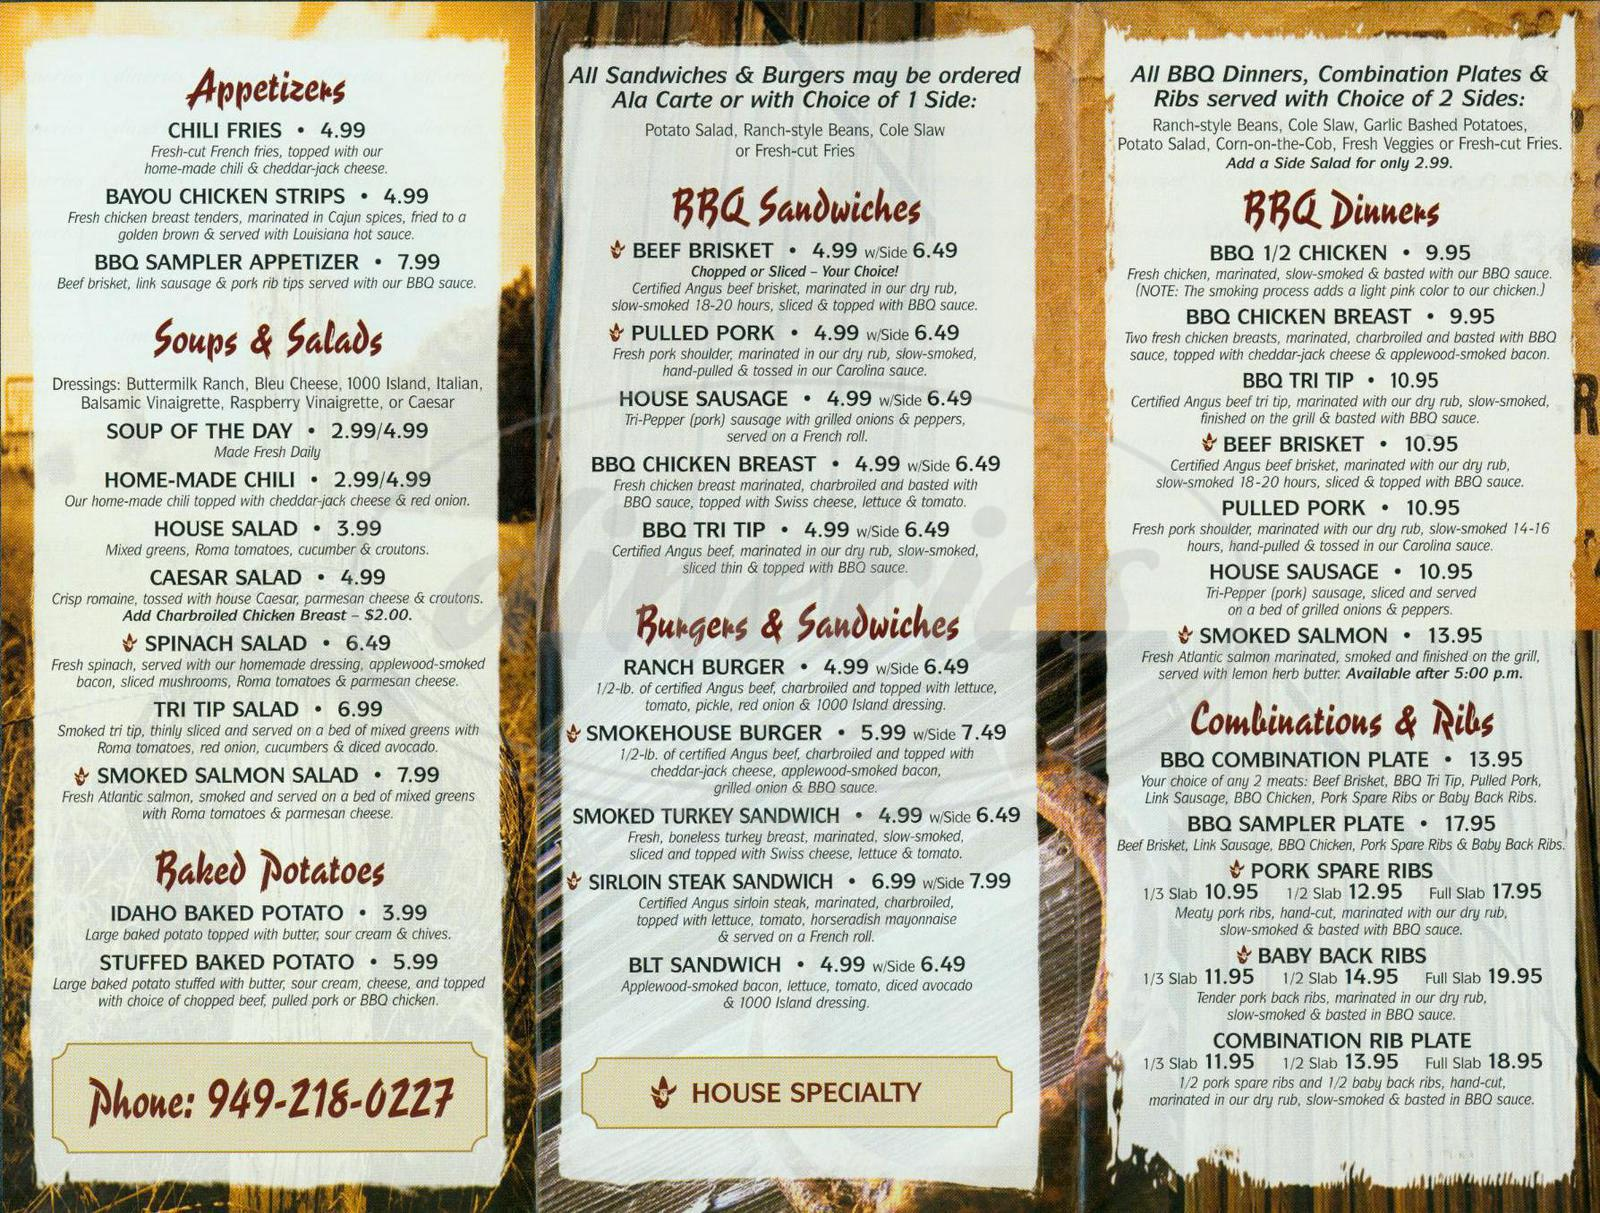 menu for Bad to The Bone Bbq